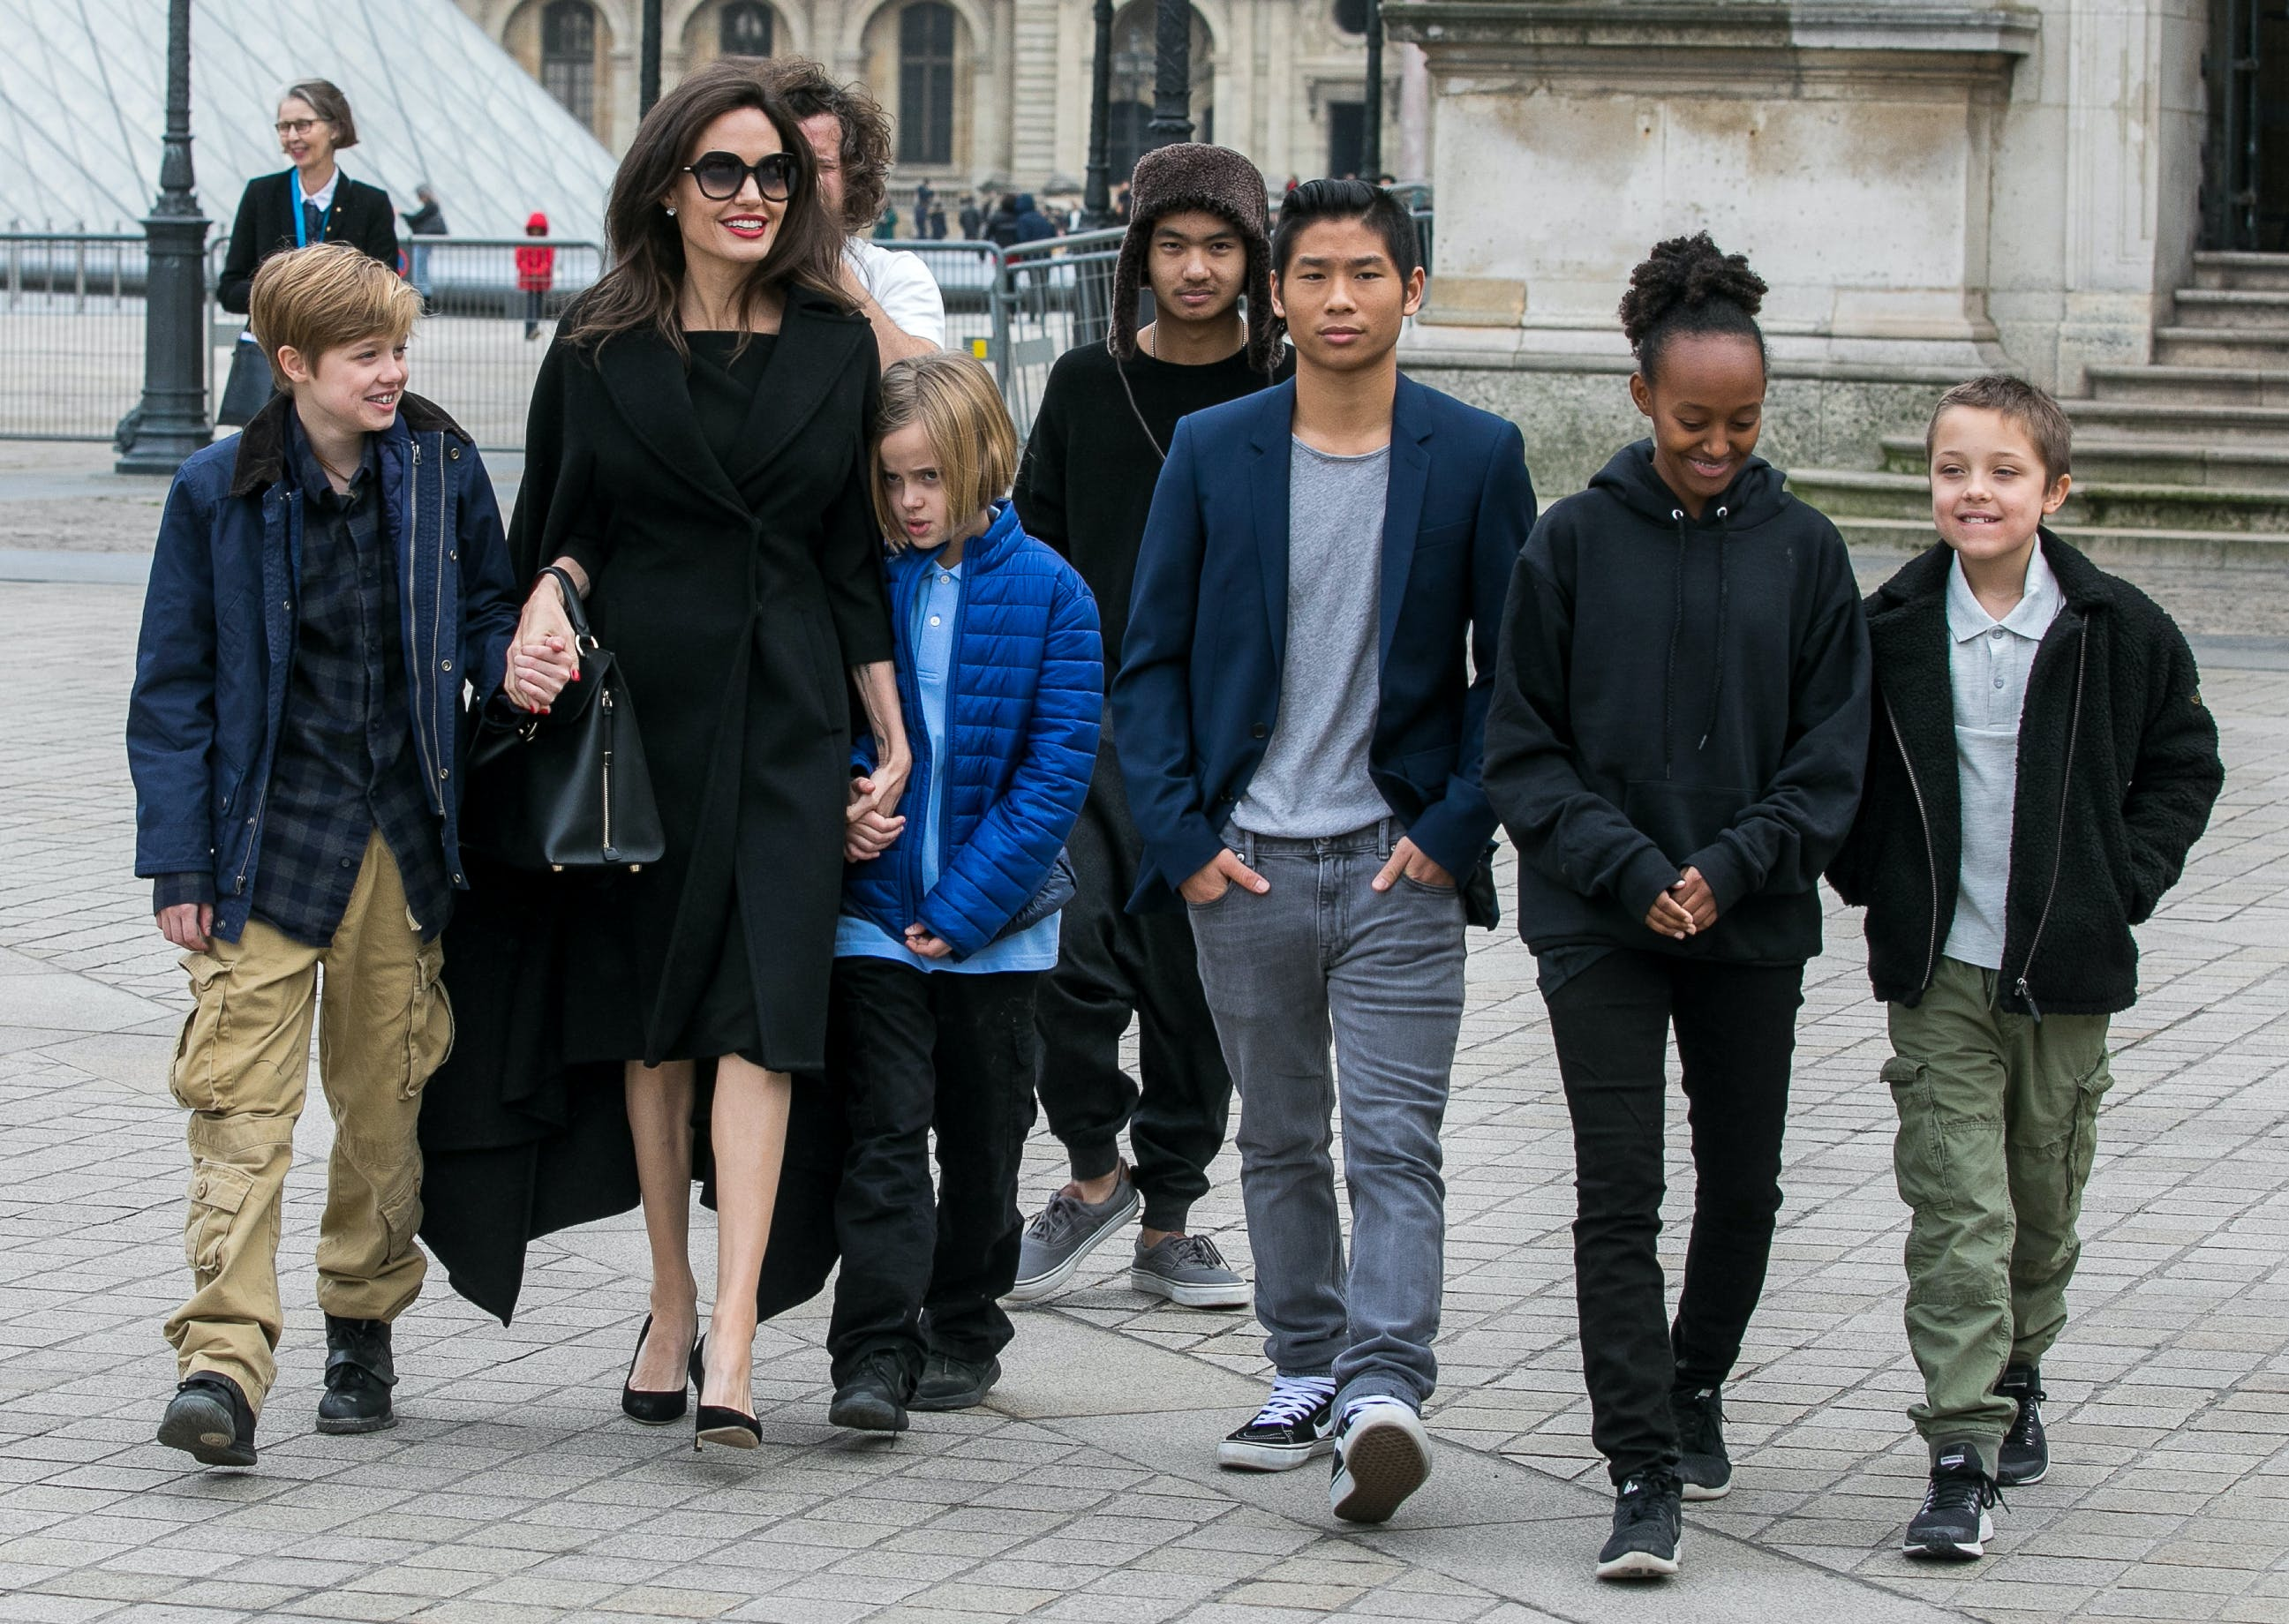 angelina jolie and her brood leaving the louvre